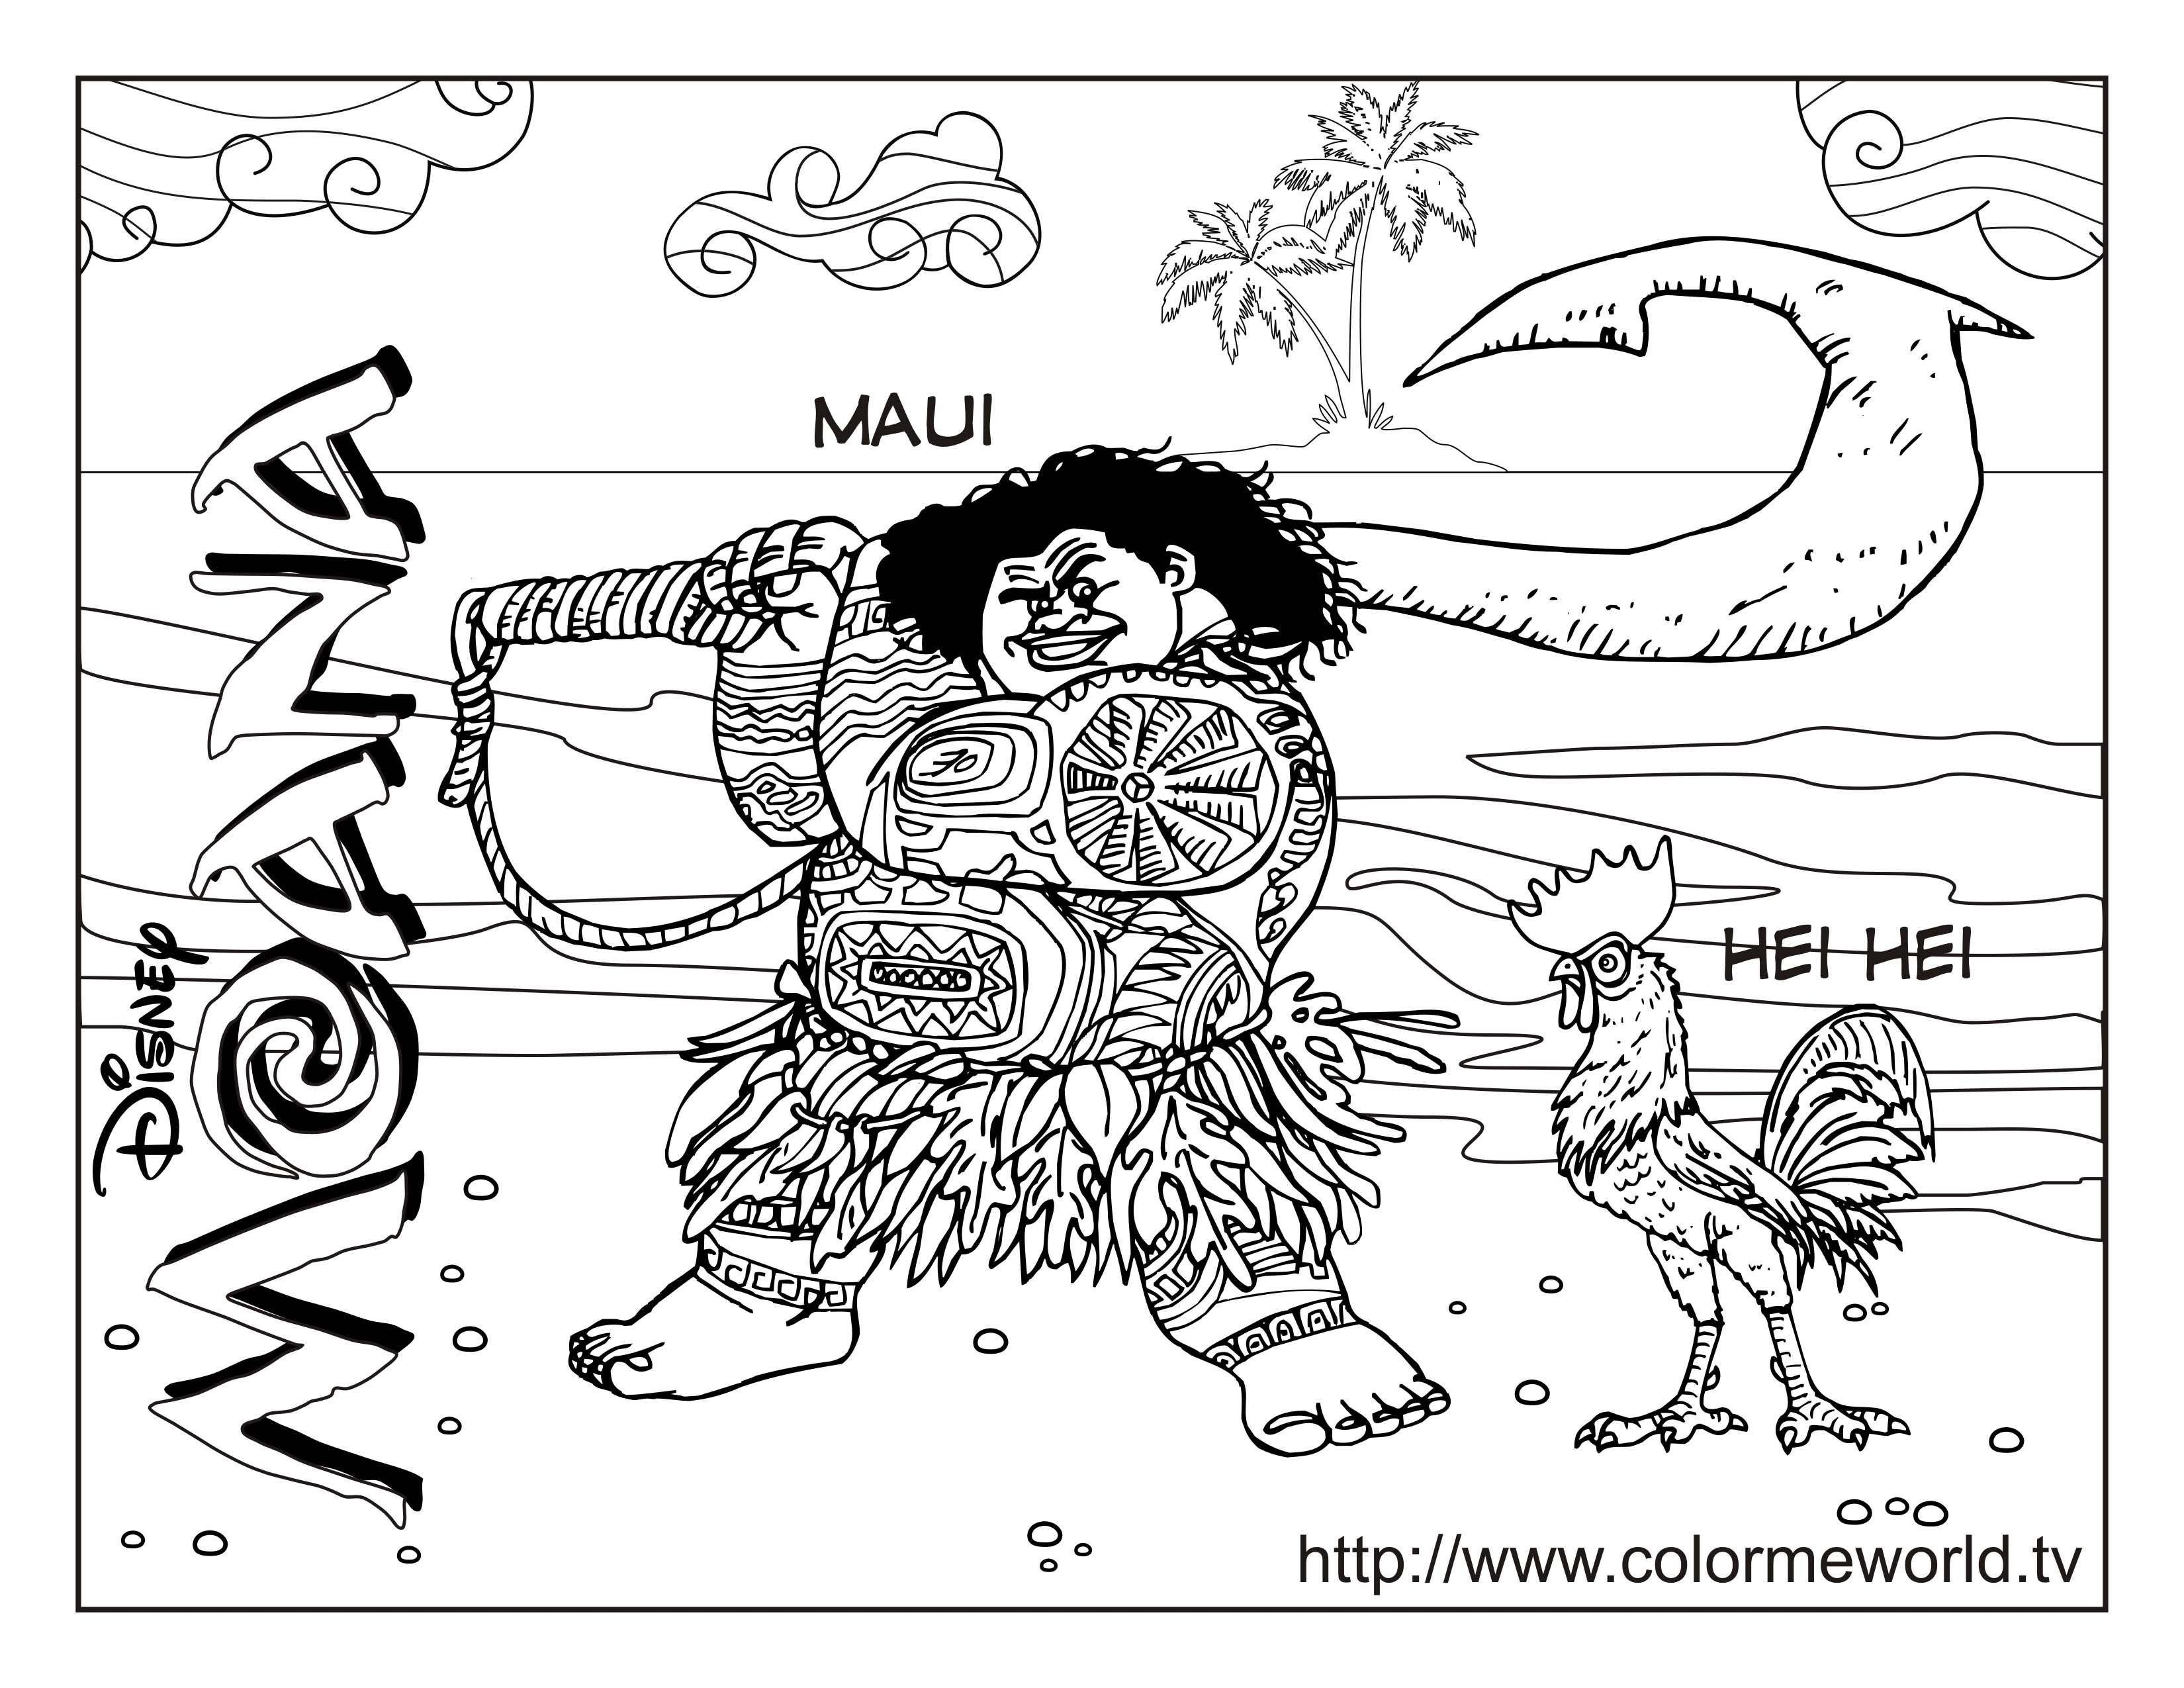 Moana Coloring Pages Free Printable Moana Coloring Sheets For Kids